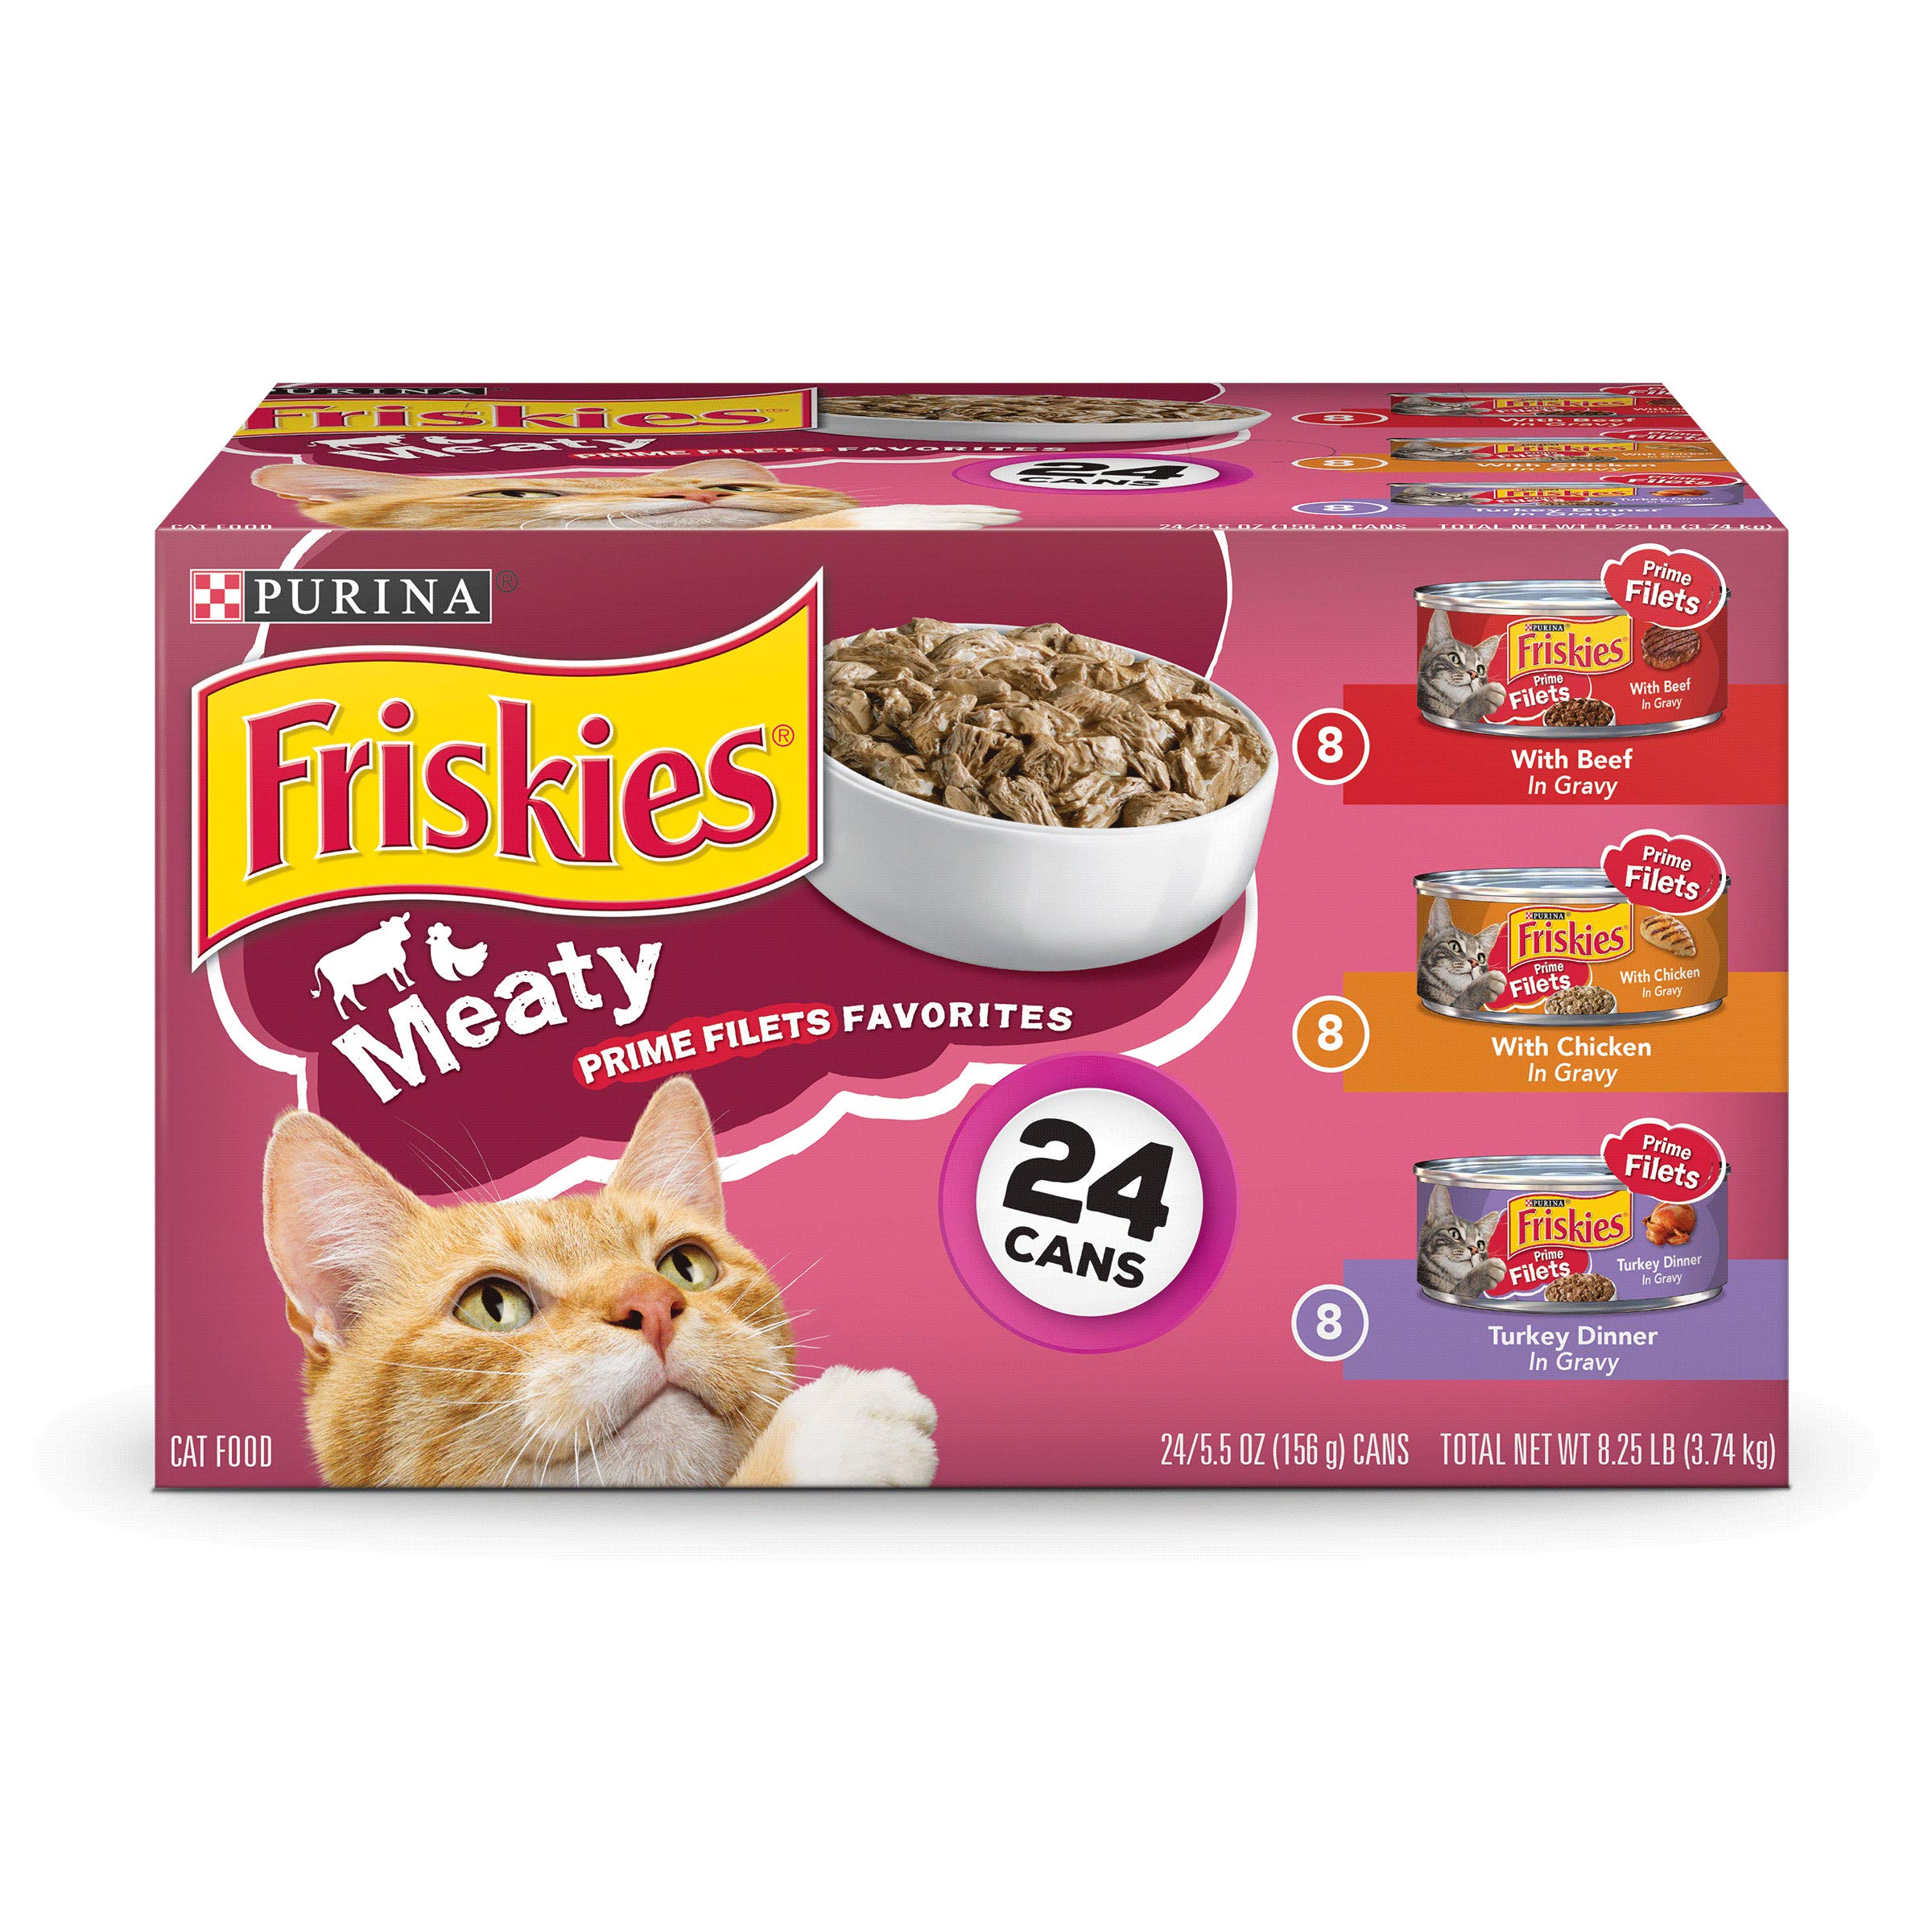 Purina Friskies Prime Filets Adult Wet Cat Food Variety Pack - (24) 5.5 oz